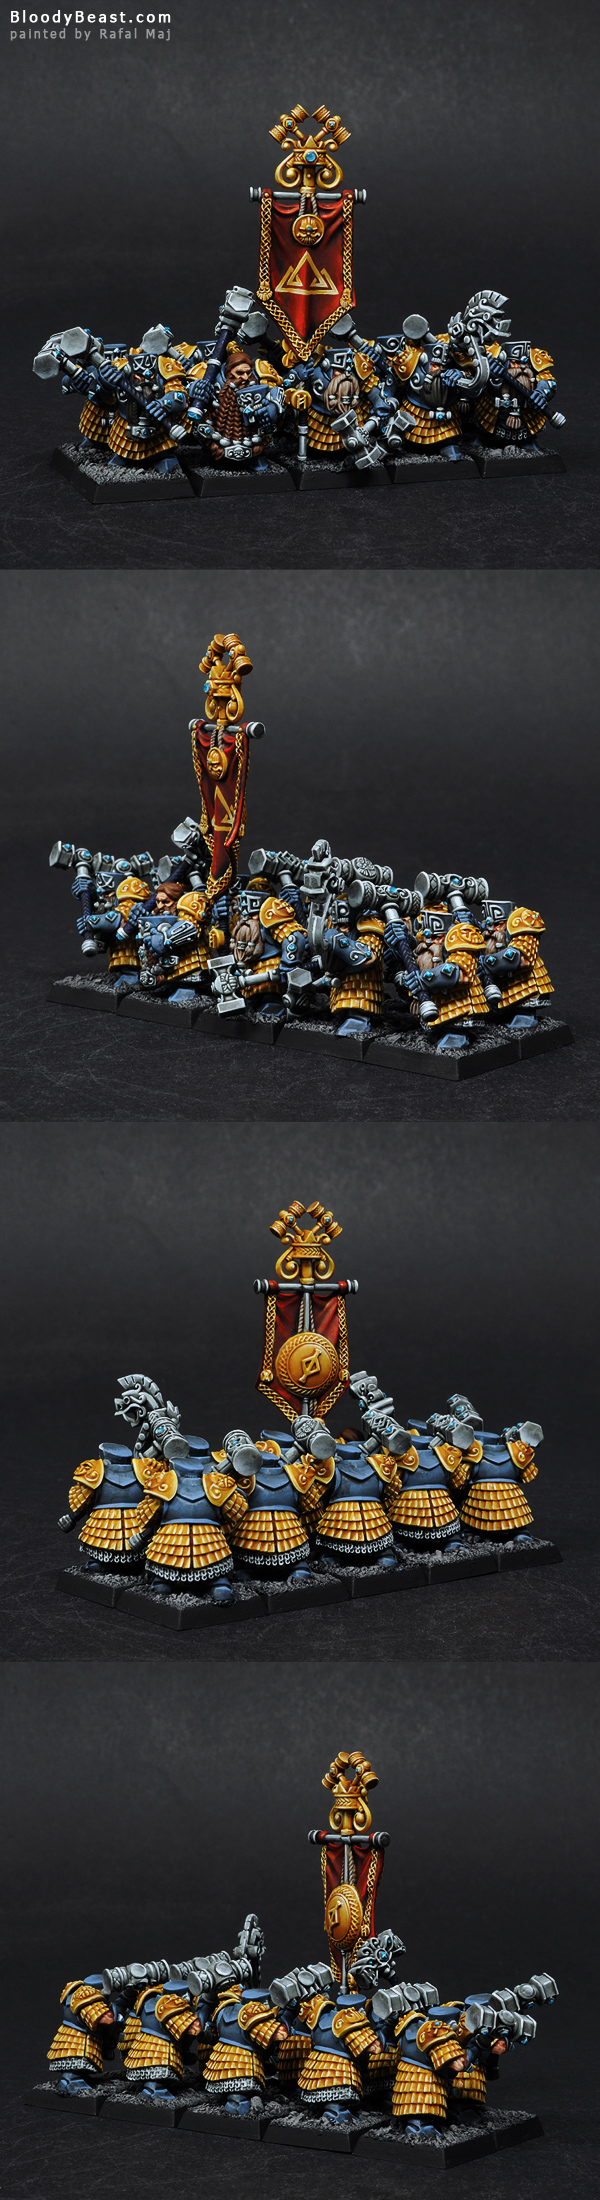 Dwarf Hammerers painted by Rafal Maj (BloodyBeast.com)